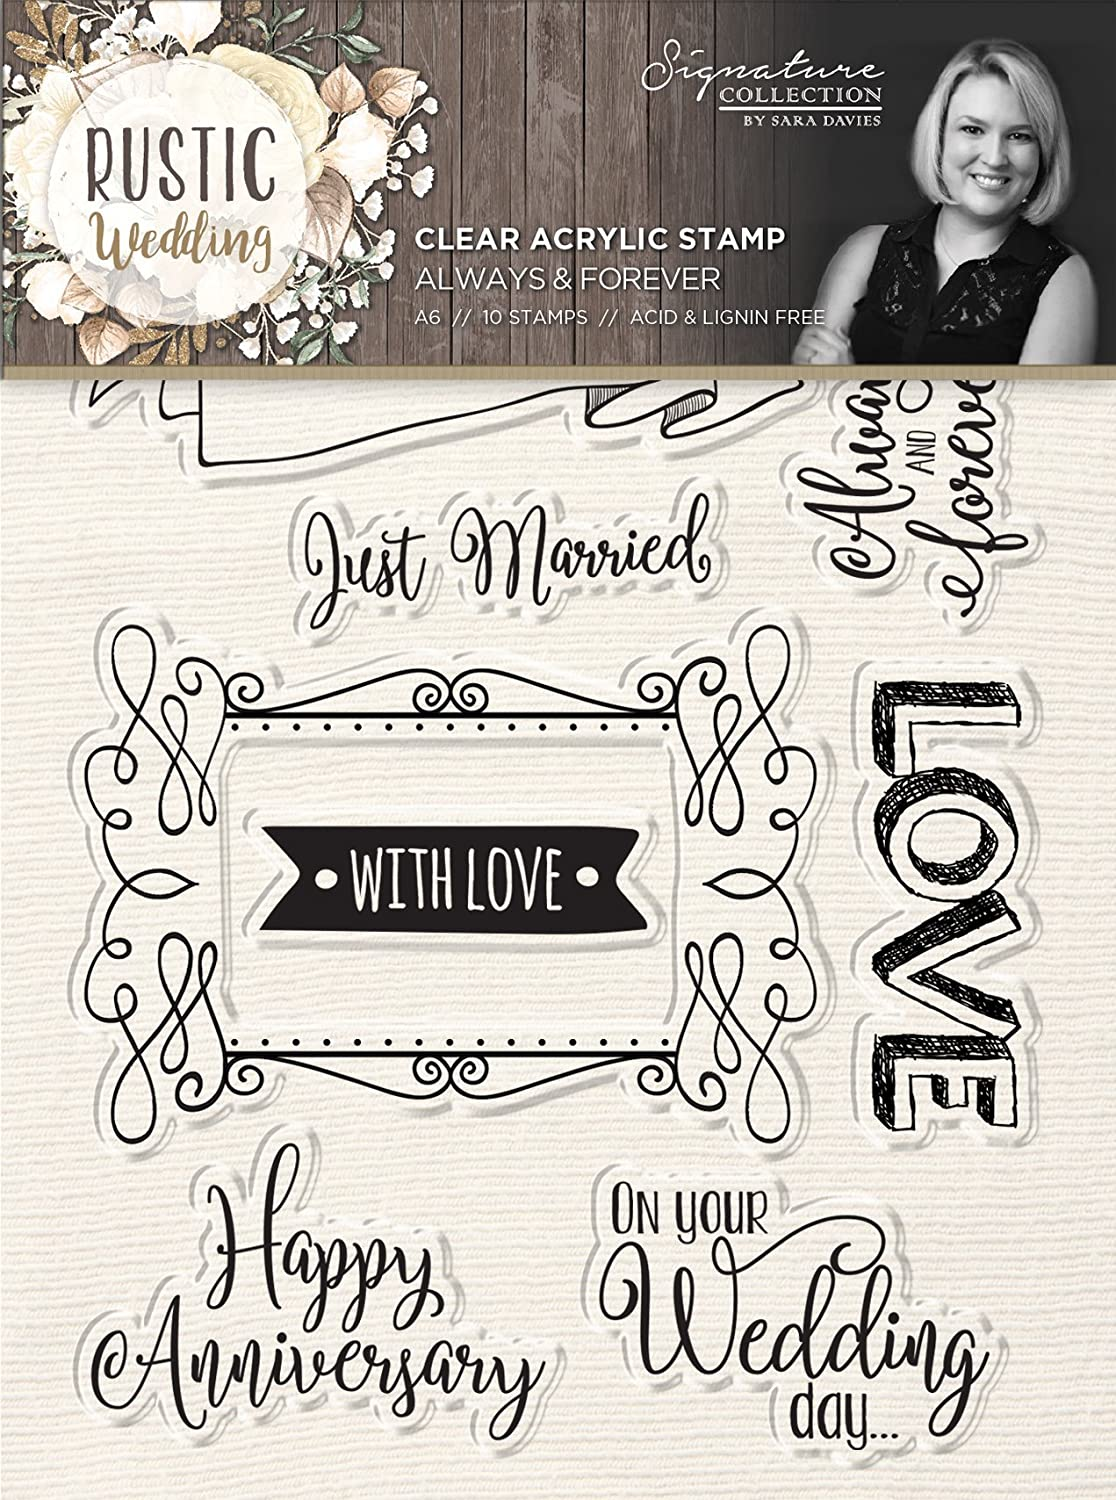 Sara's Signature S-RW-ST-AAF Always & Forever 10 Piece Rustic Wedding Stamp Set, Clear